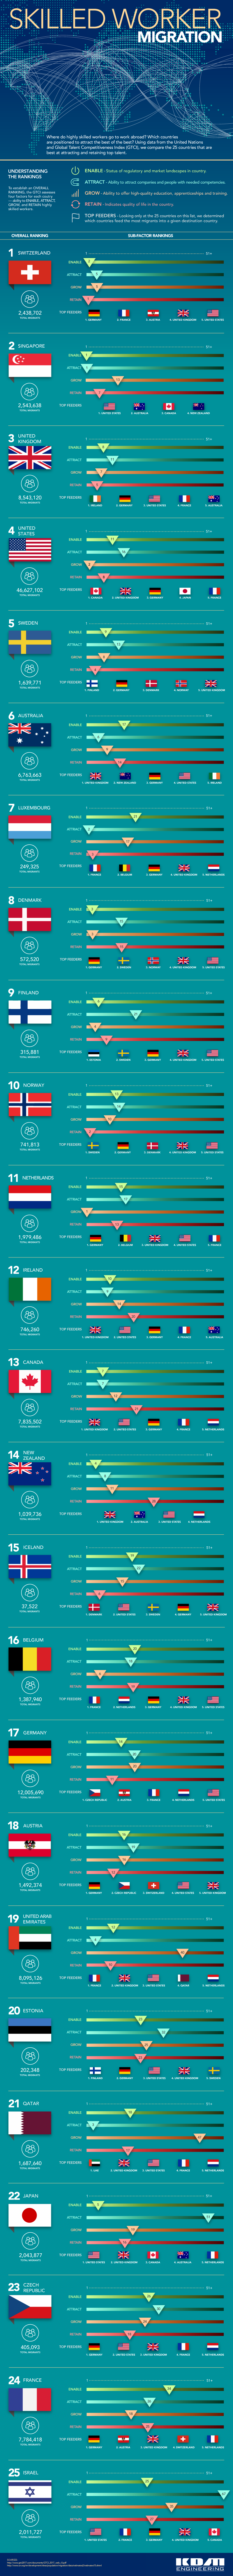 Highly Skilled Worker Migration #infographic